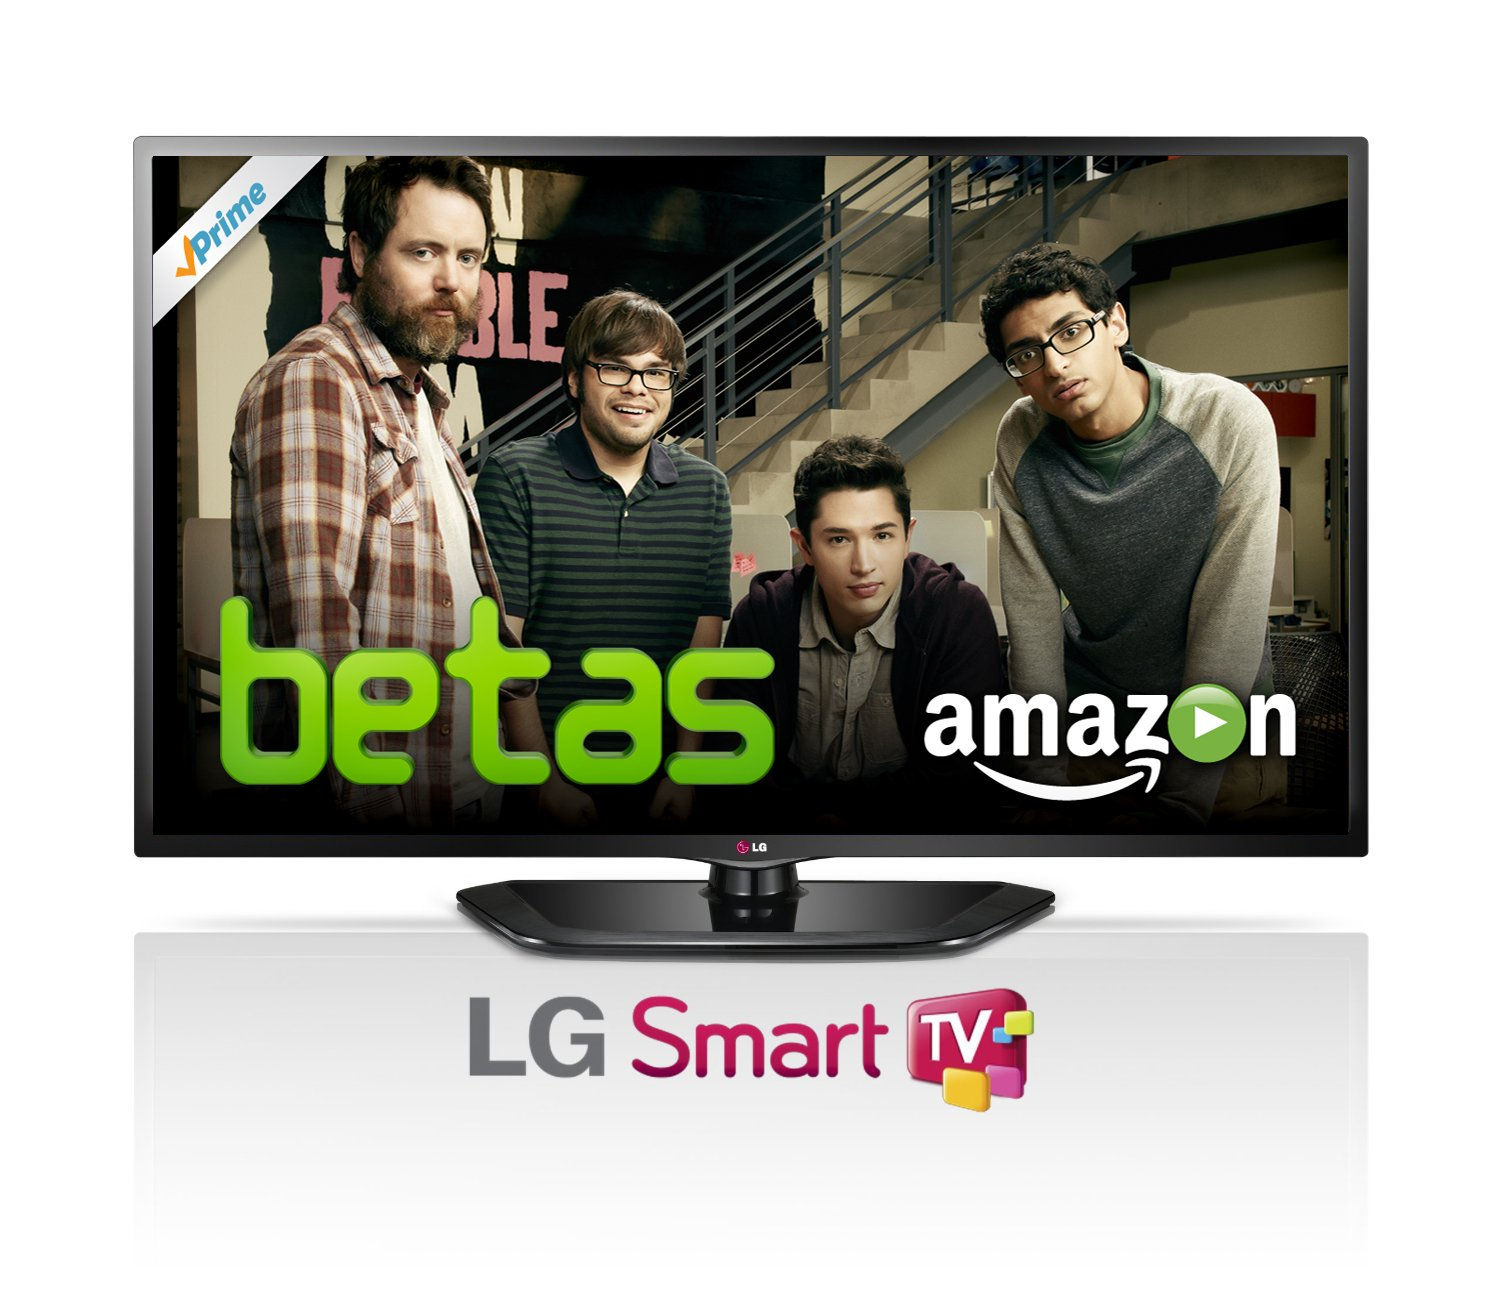 LG-Electronics-42LN5700-42-Inch-1080p-120Hz-LED-LCD-HDTV-with-Smart-TV-2013-Model-